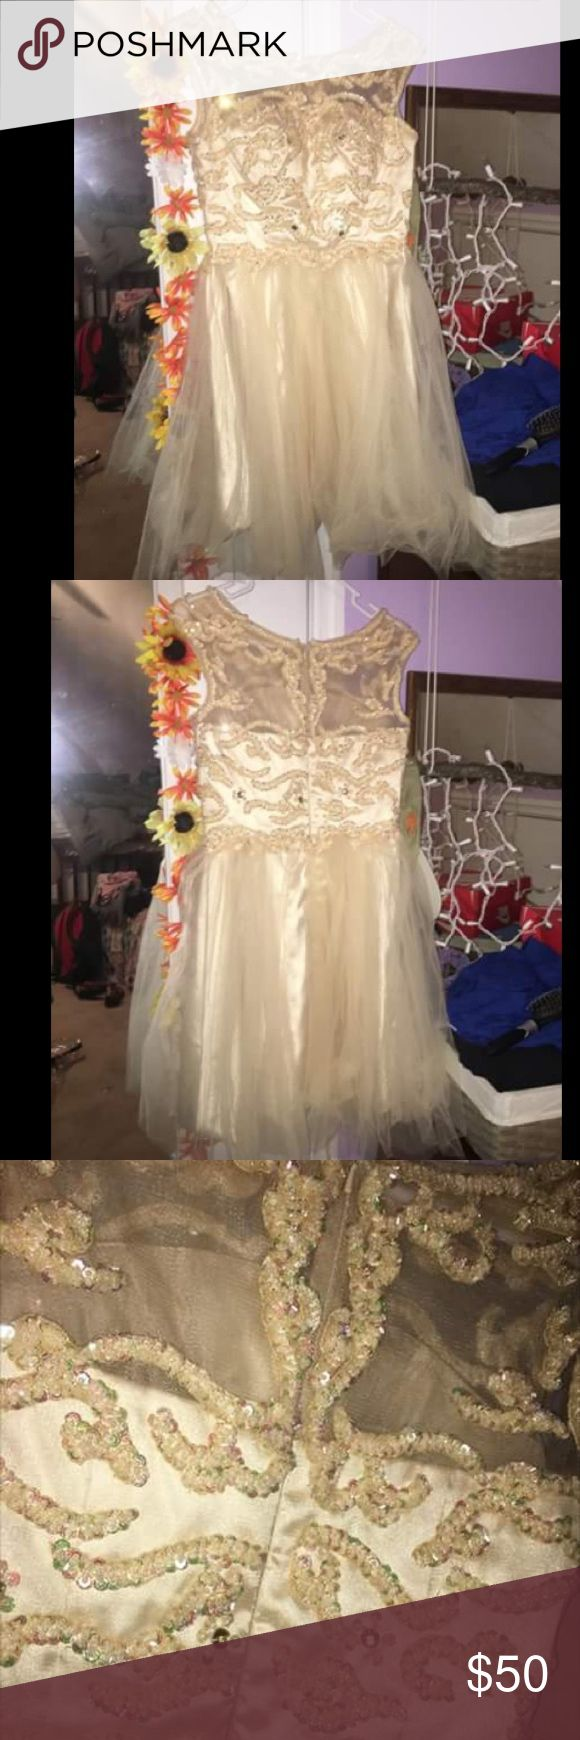 short prom dress champagne colored dress wore once for about 2 hours. smoke free home. size 3/4 jjs house Dresses Prom